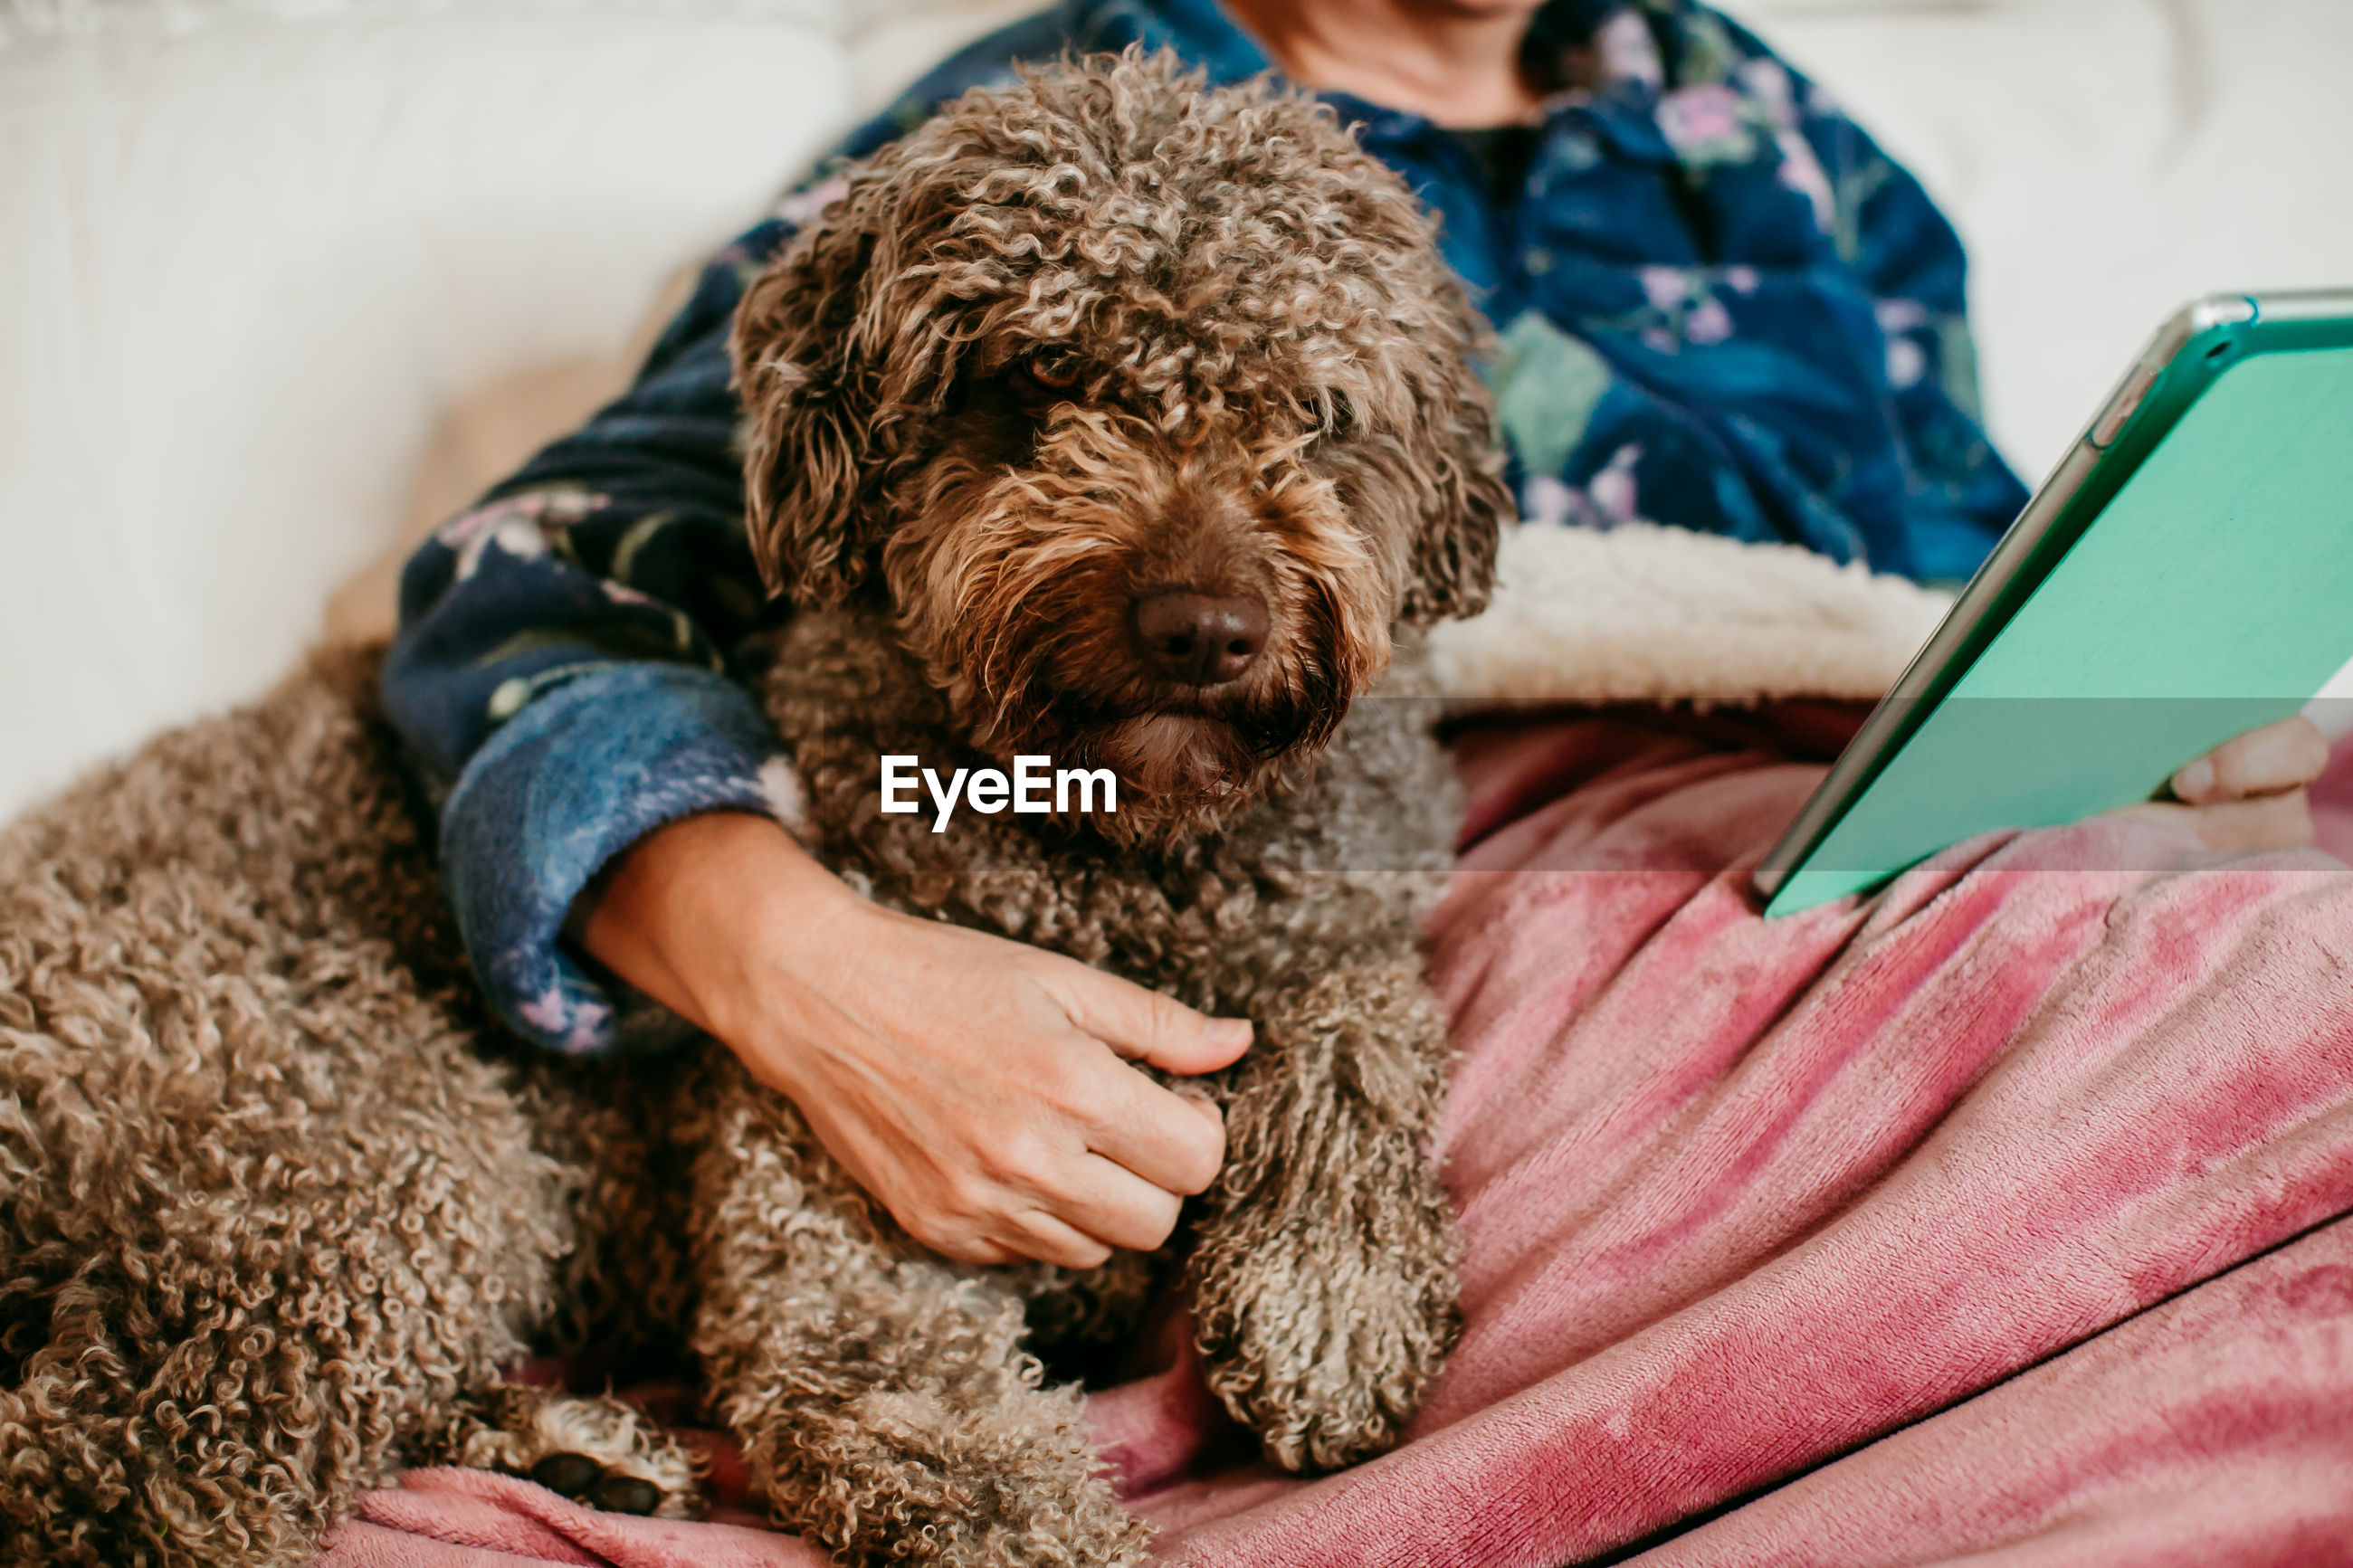 Midsection of woman holding dog while using digital tablet on sofa